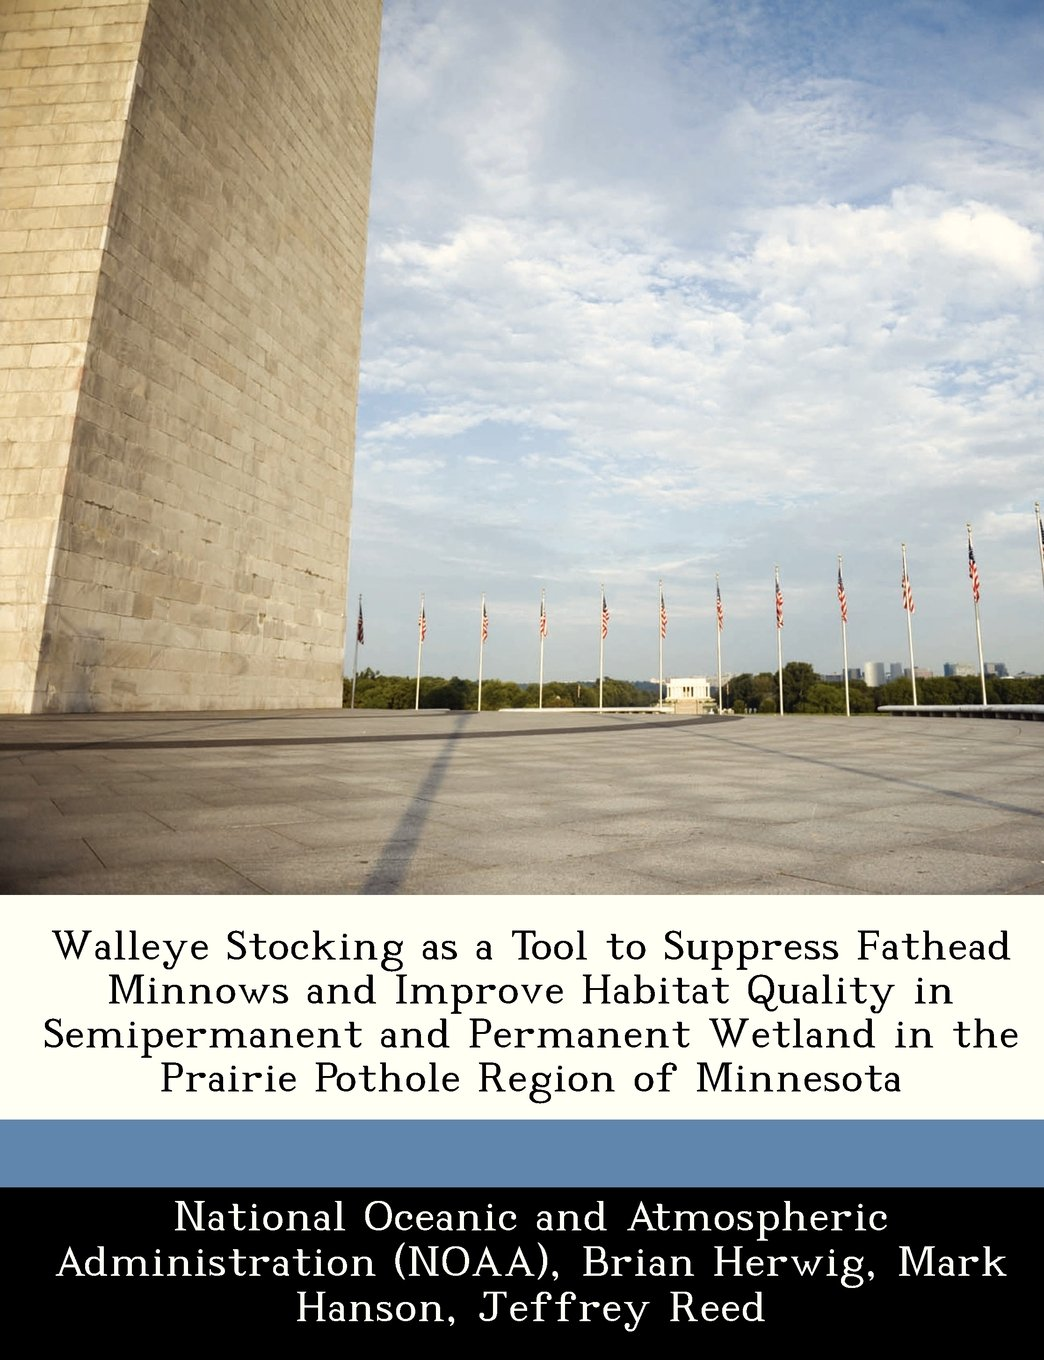 Walleye Stocking as a Tool to Suppress Fathead Minnows and Improve Habitat Quality in Semipermanent and Permanent Wetland in the Prairie Pothole Region of Minnesota PDF